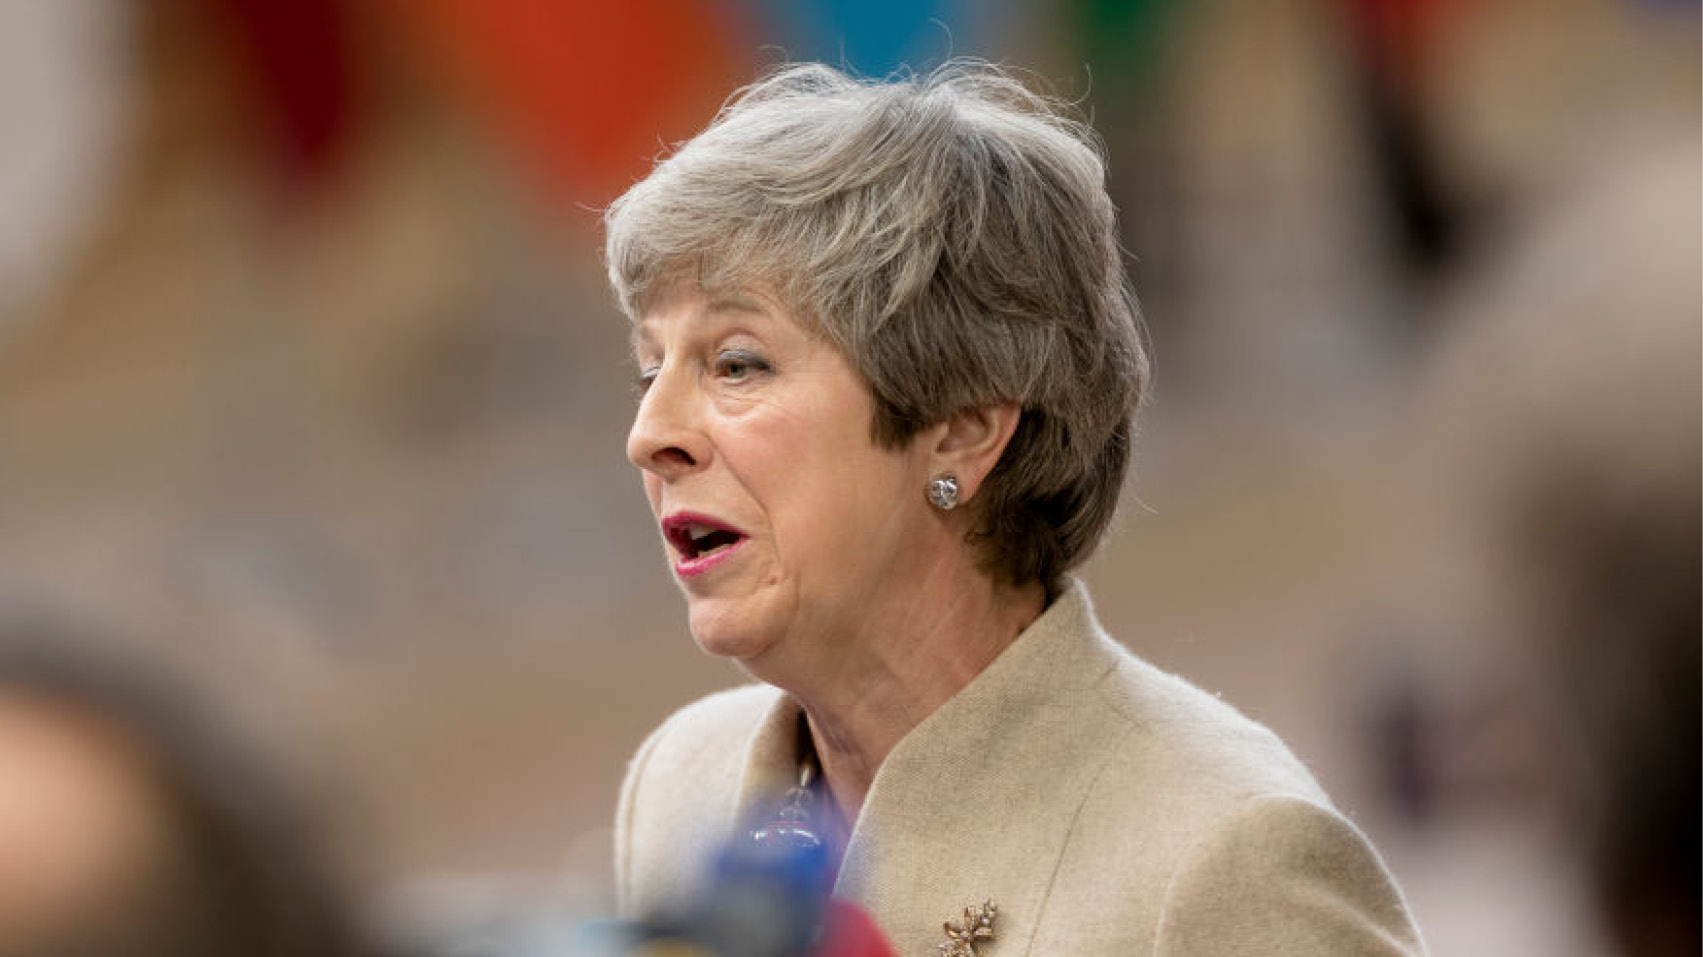 John Fonte discusses Theresa May's resignation and what it means for the future of Brexit.